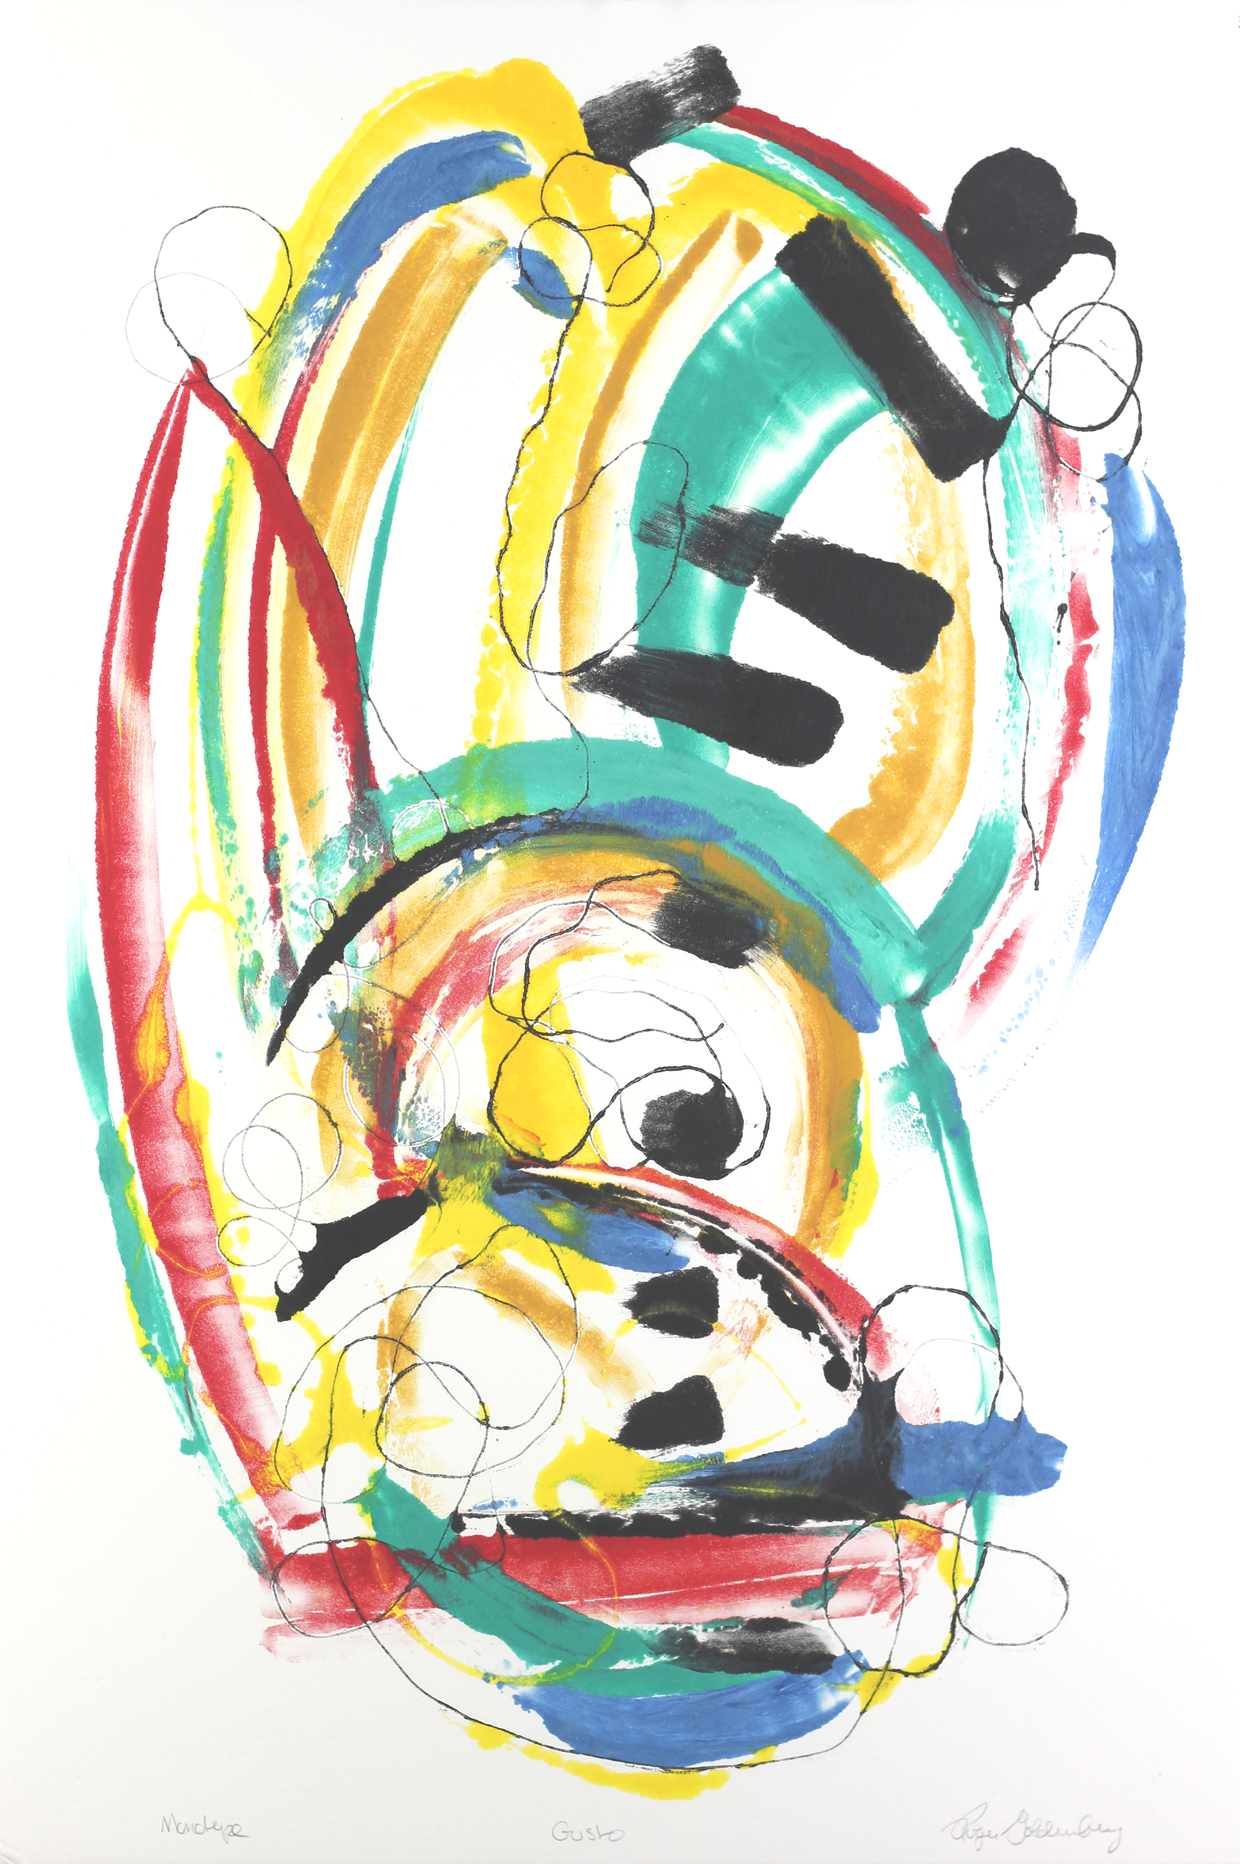 Roger Goldenberg's Visual Jazz Monotype Gallery D has prints pulled from shaped plates. Their style riffs on Goldenberg's shaped visual jazz paintings Gusto